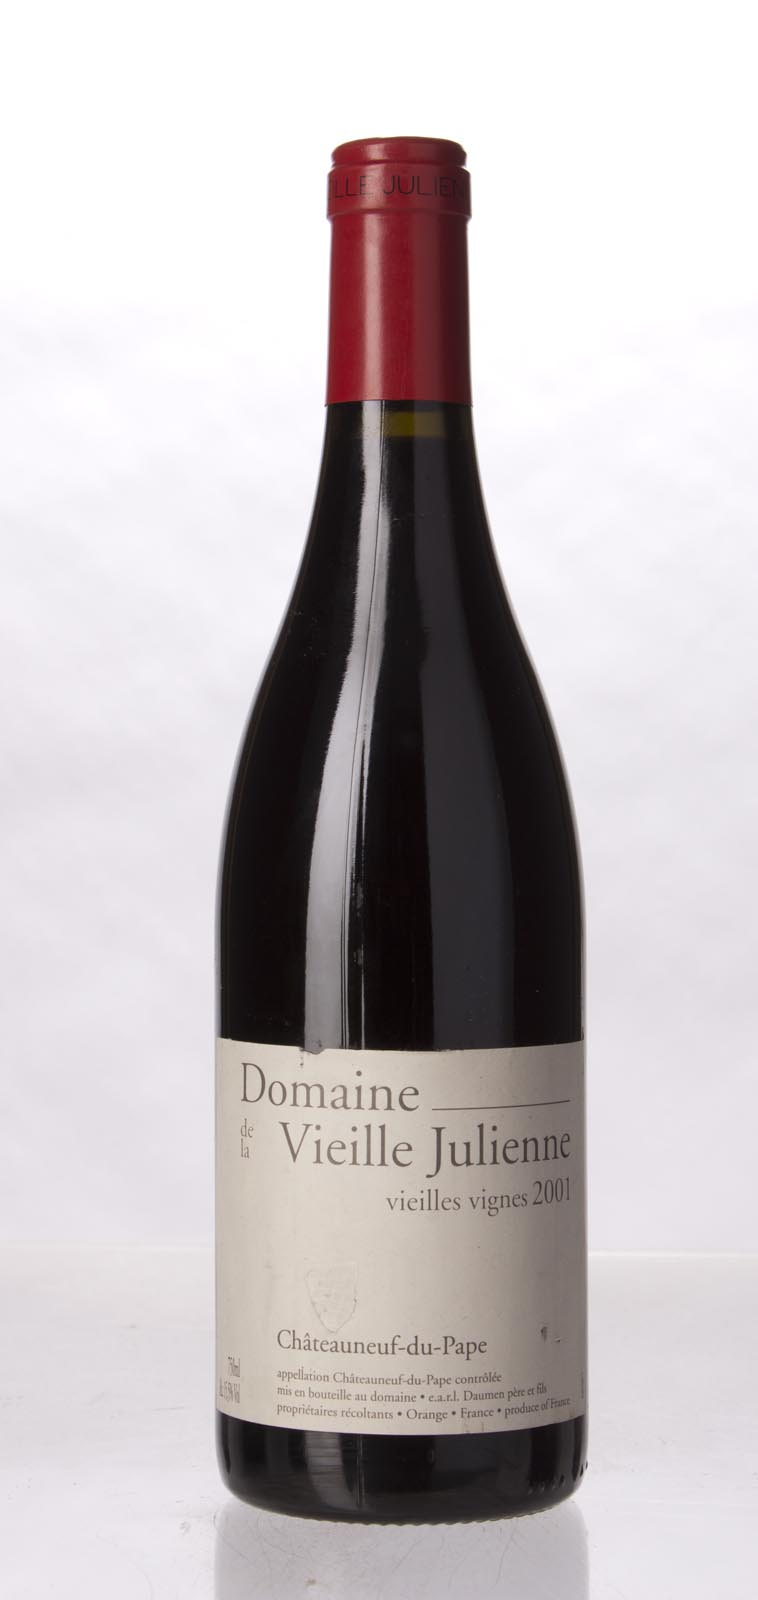 Domaine de la Vieille Julienne Chateauneuf du Pape Vieilles Vignes 2001, 750mL (WA96) from The BPW - Merchants of rare and fine wines.